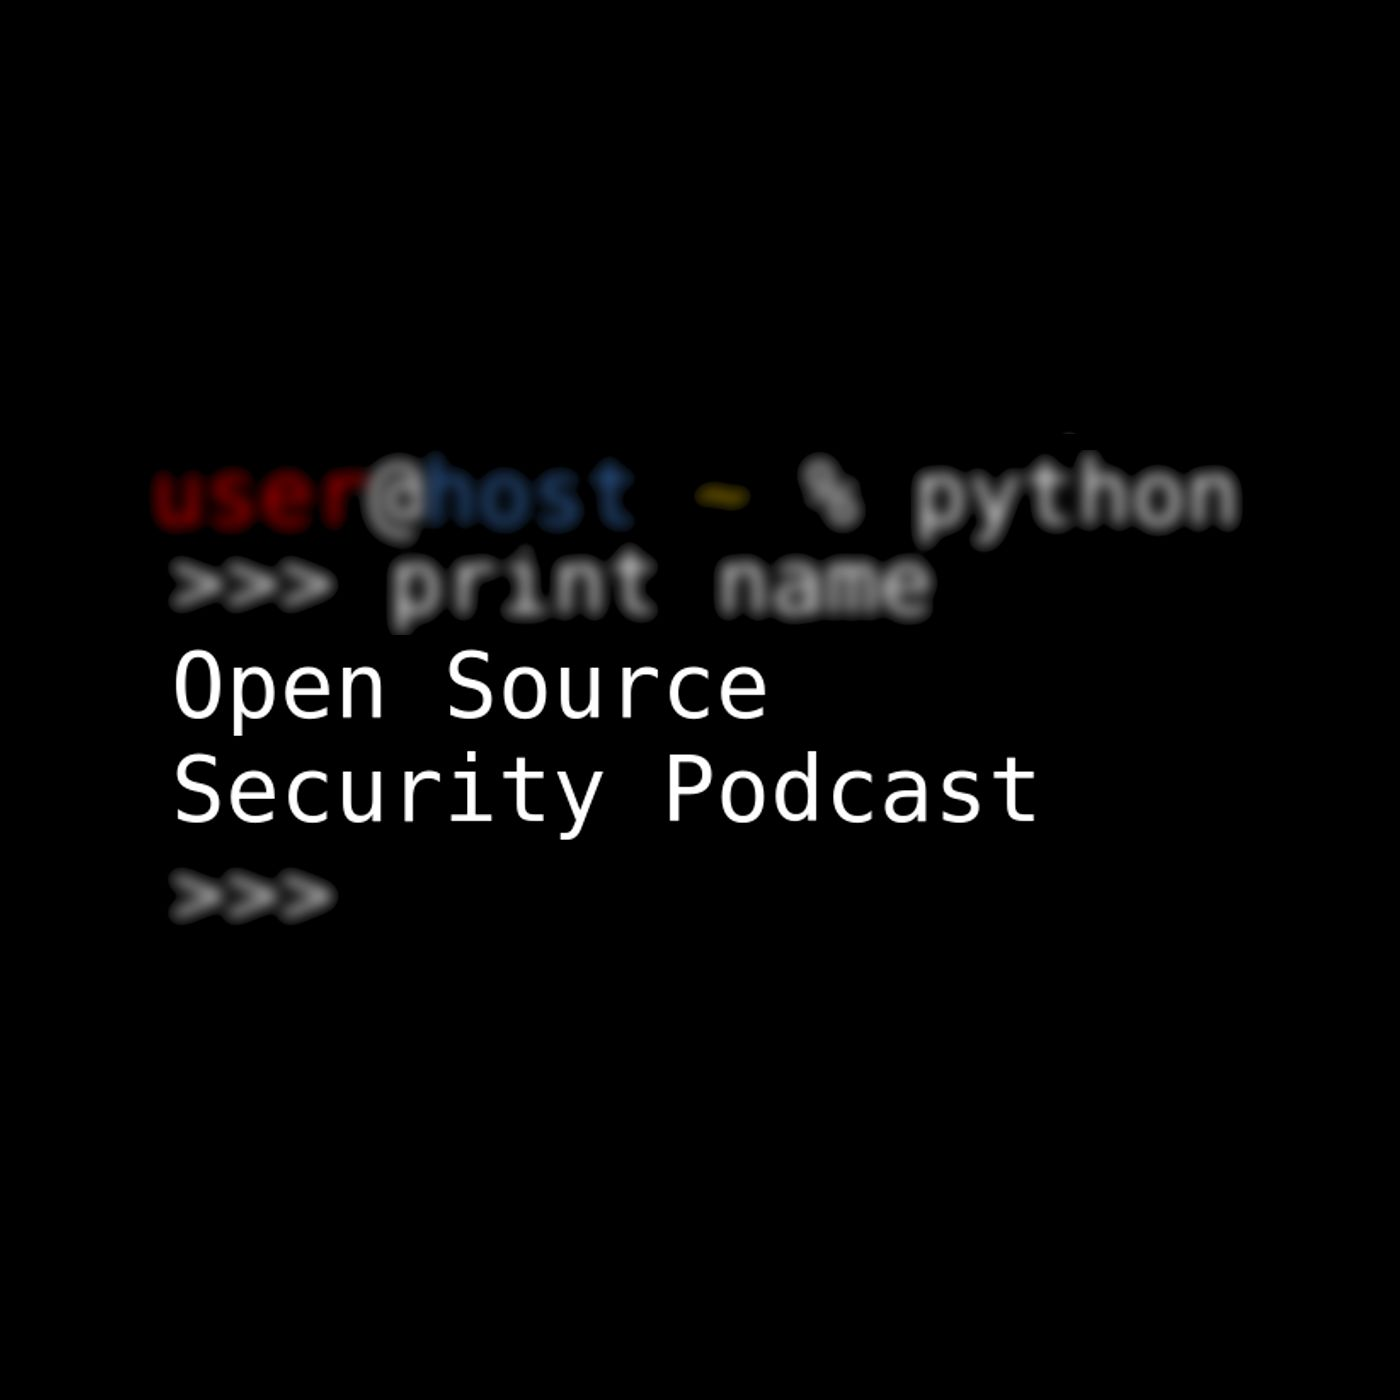 Open Source Security Podcast show art